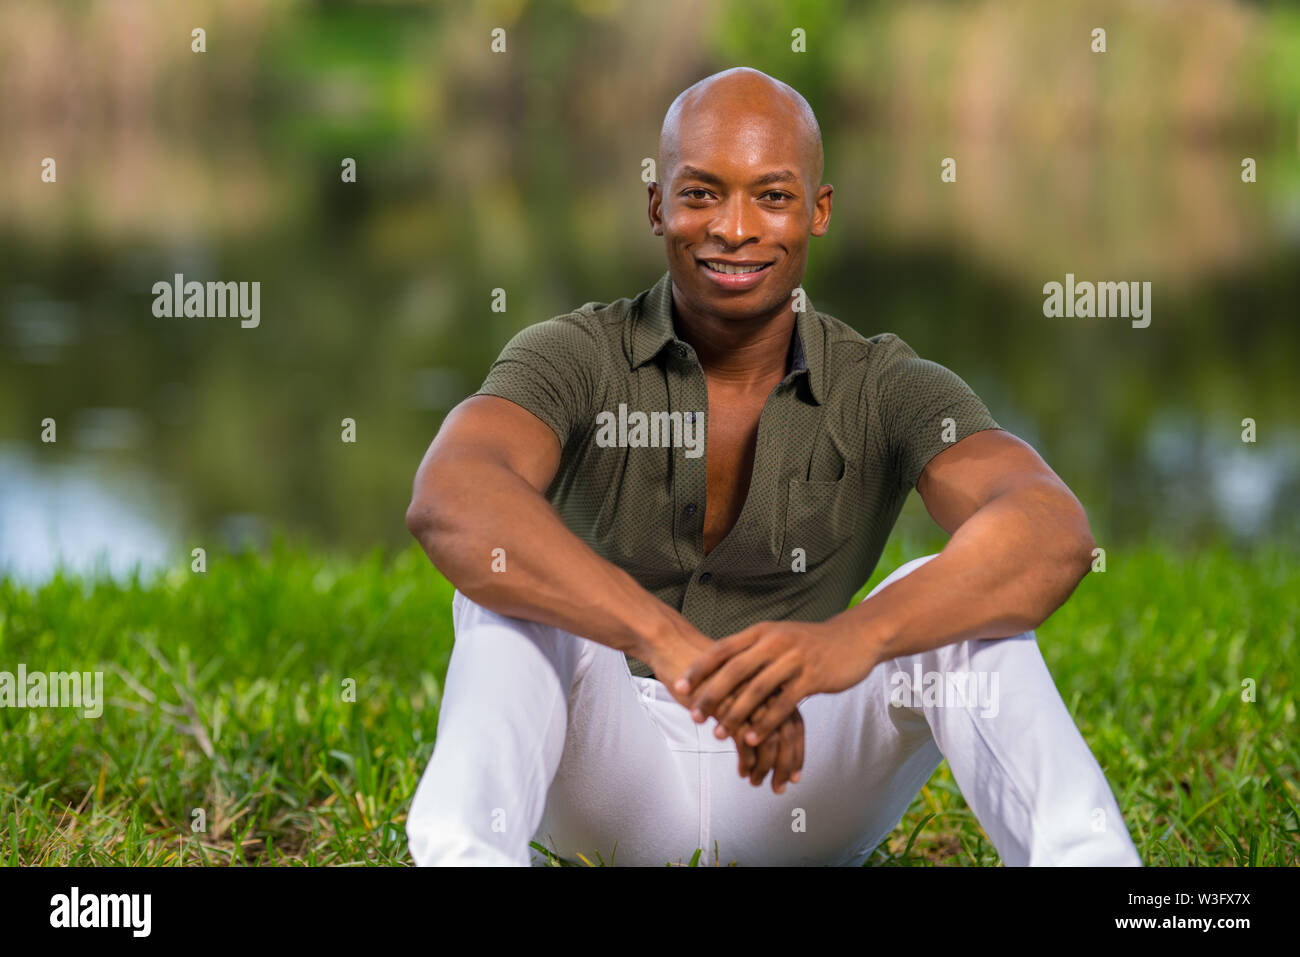 Portrait of a fashionable African American man sitting on grass in the park. Man is smiling and looking at camera - Stock Image